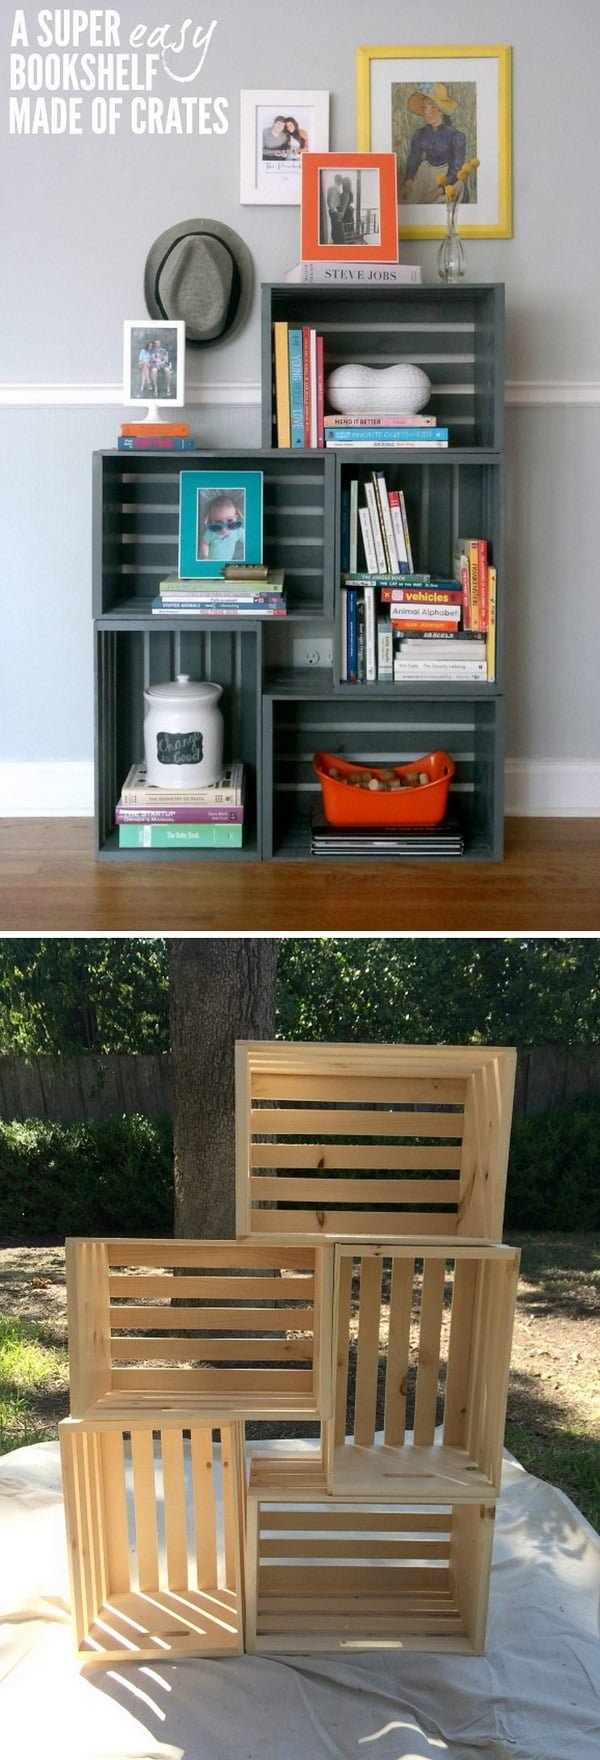 22 Easy DIY Bookshelf Ideas You Can Build at Home - Check out how to build an easy DIY bookshelf from crates